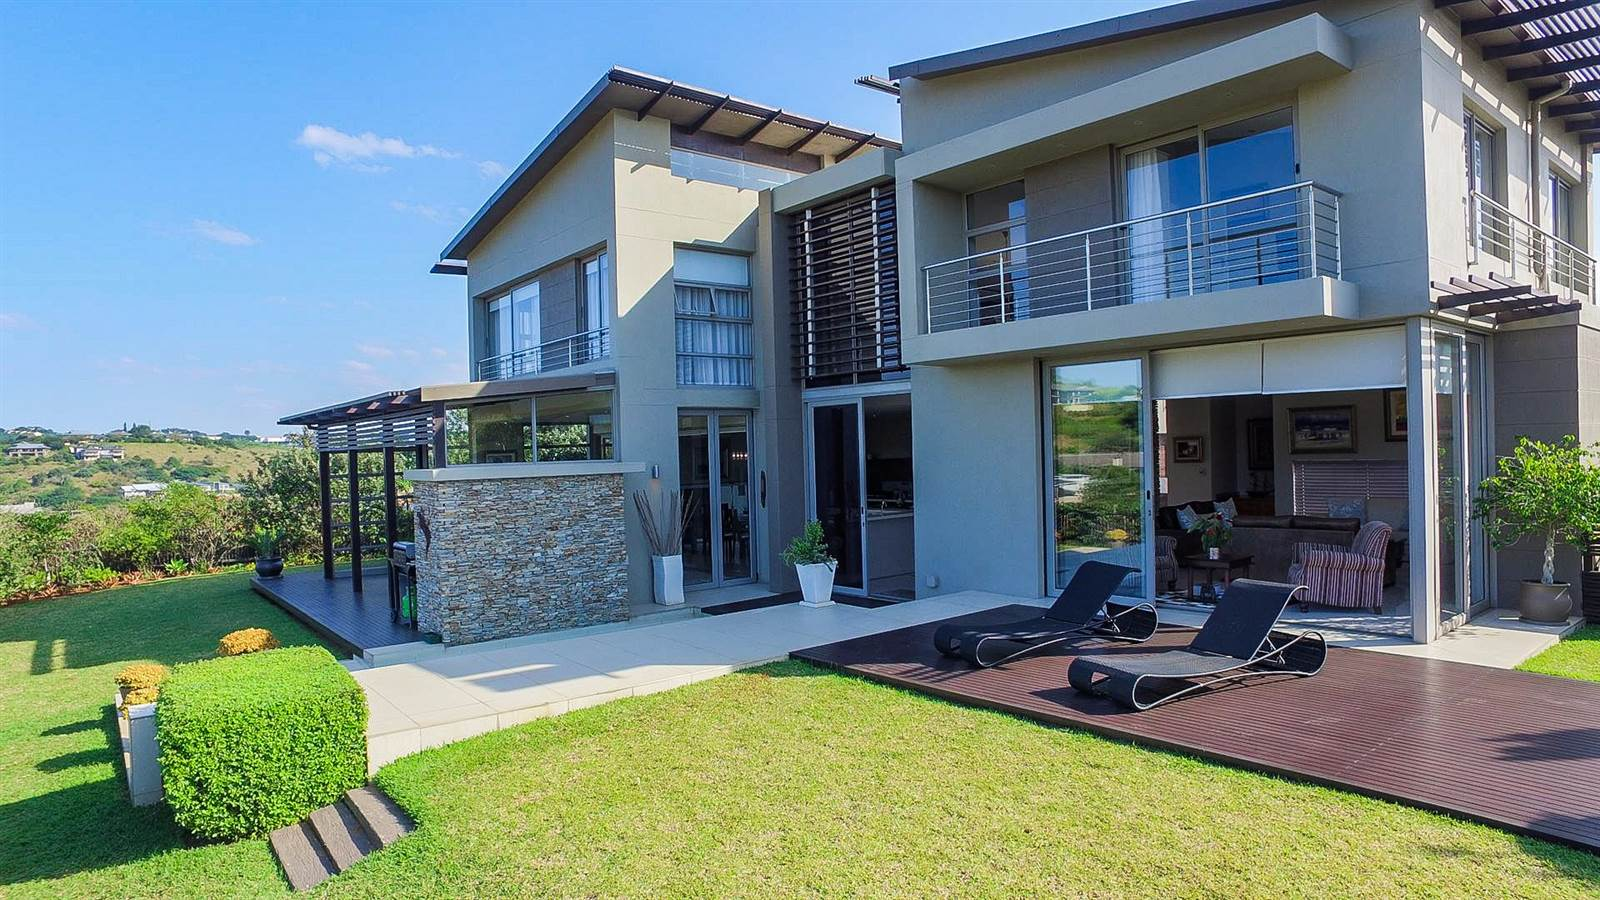 5 Bedroom House For Sale in Simbithi Estate